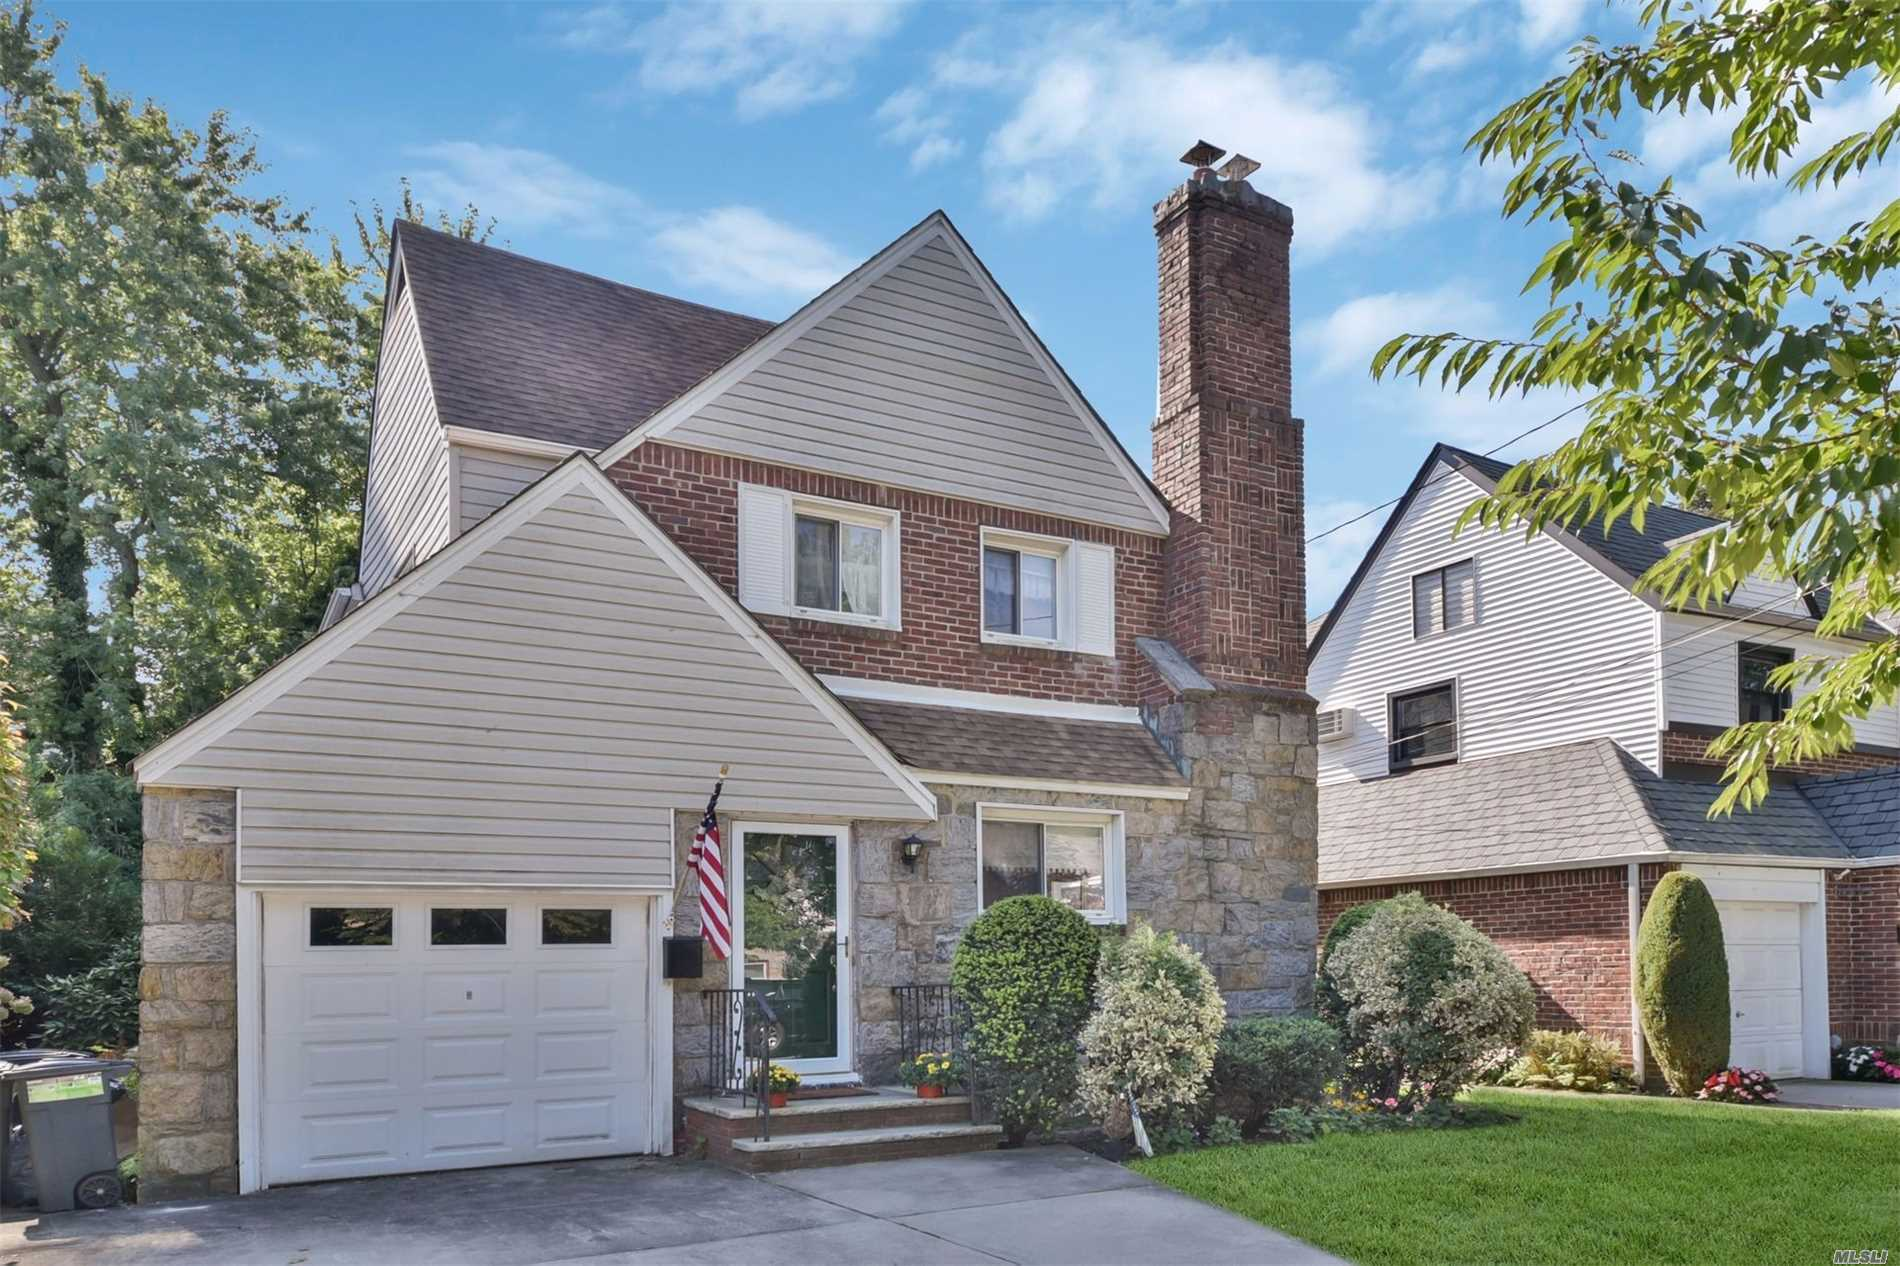 This Beautiful 3 Bedroom Colonial Is Located On A Quiet Tree-Lined Dead End Street In The Village Of Floral Park. The First Floor Features A Lg Living Rm, Formal Dining Rm, Kitchen, And Den. The Second Floor Features 3 Bedrooms And A Full Bath. The Beautifully Landscaped Backyard Makes It Perfect For Entertaining And Bbqs. The House Is In Close Proximity To The Lirr, Covert Avenue Shopping And Restaurants. Great Location! Must See!